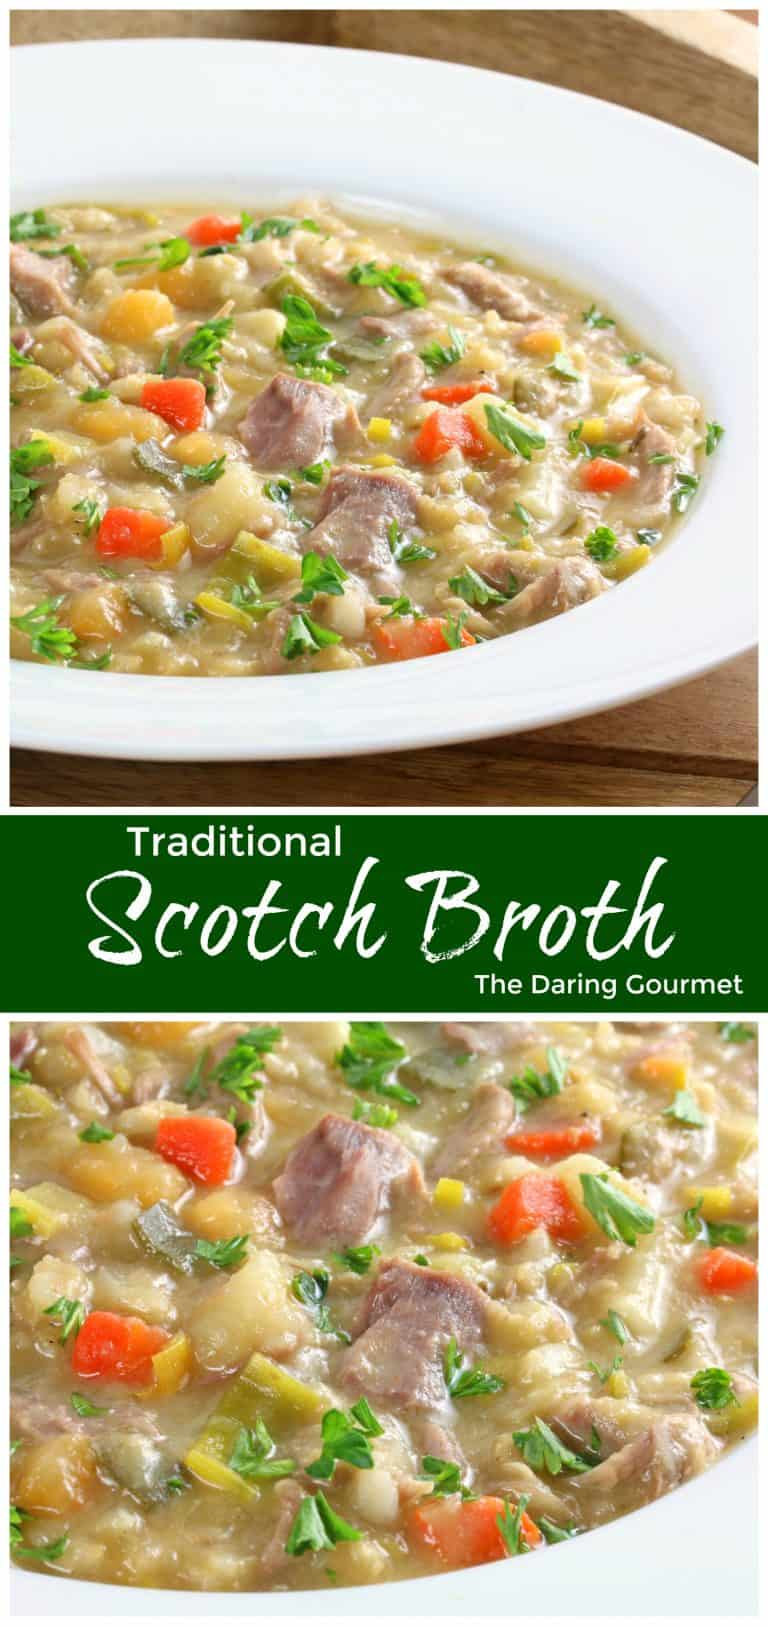 scotch broth recipe authentic traditional